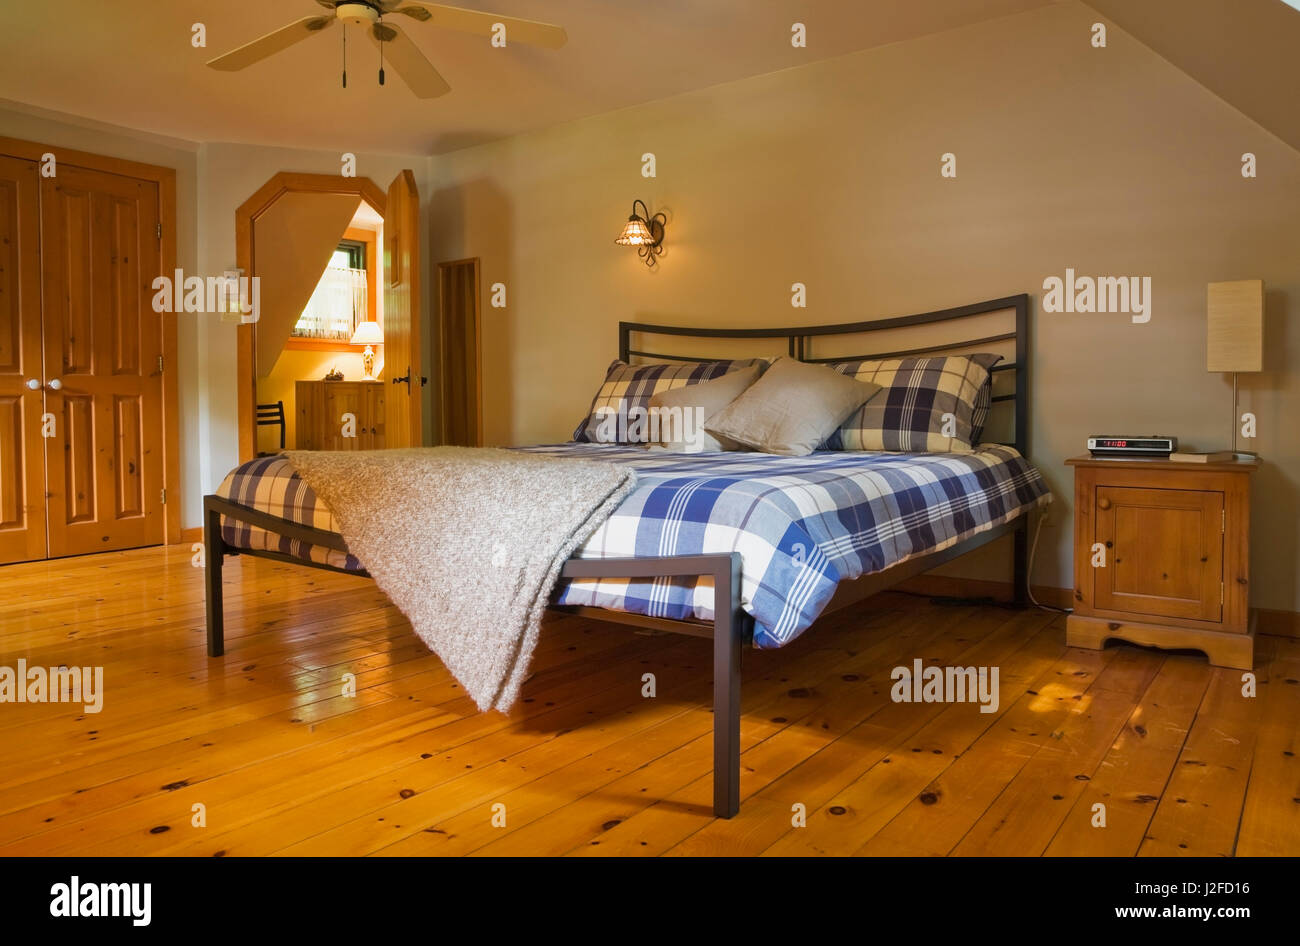 King Size Bed On Metal Frame In Master Bedroom With Partial Hexagon